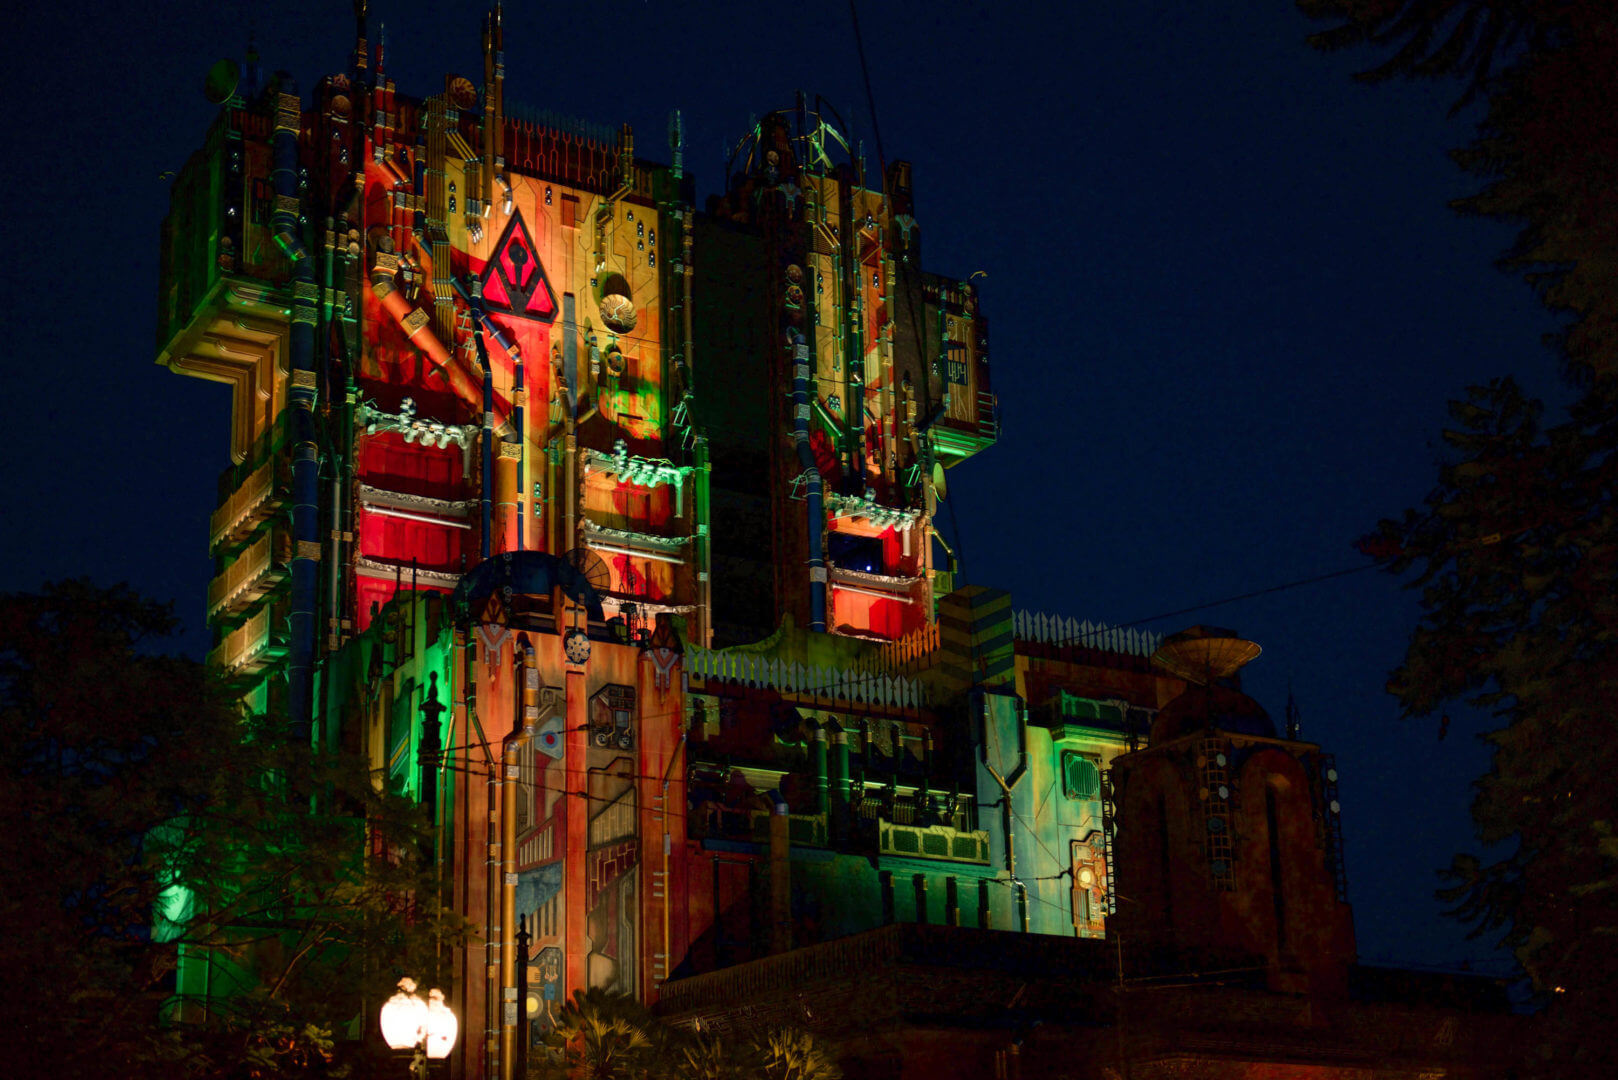 Guardians of the Galaxy: Mission Breakout! at Disneyland's California Adventure